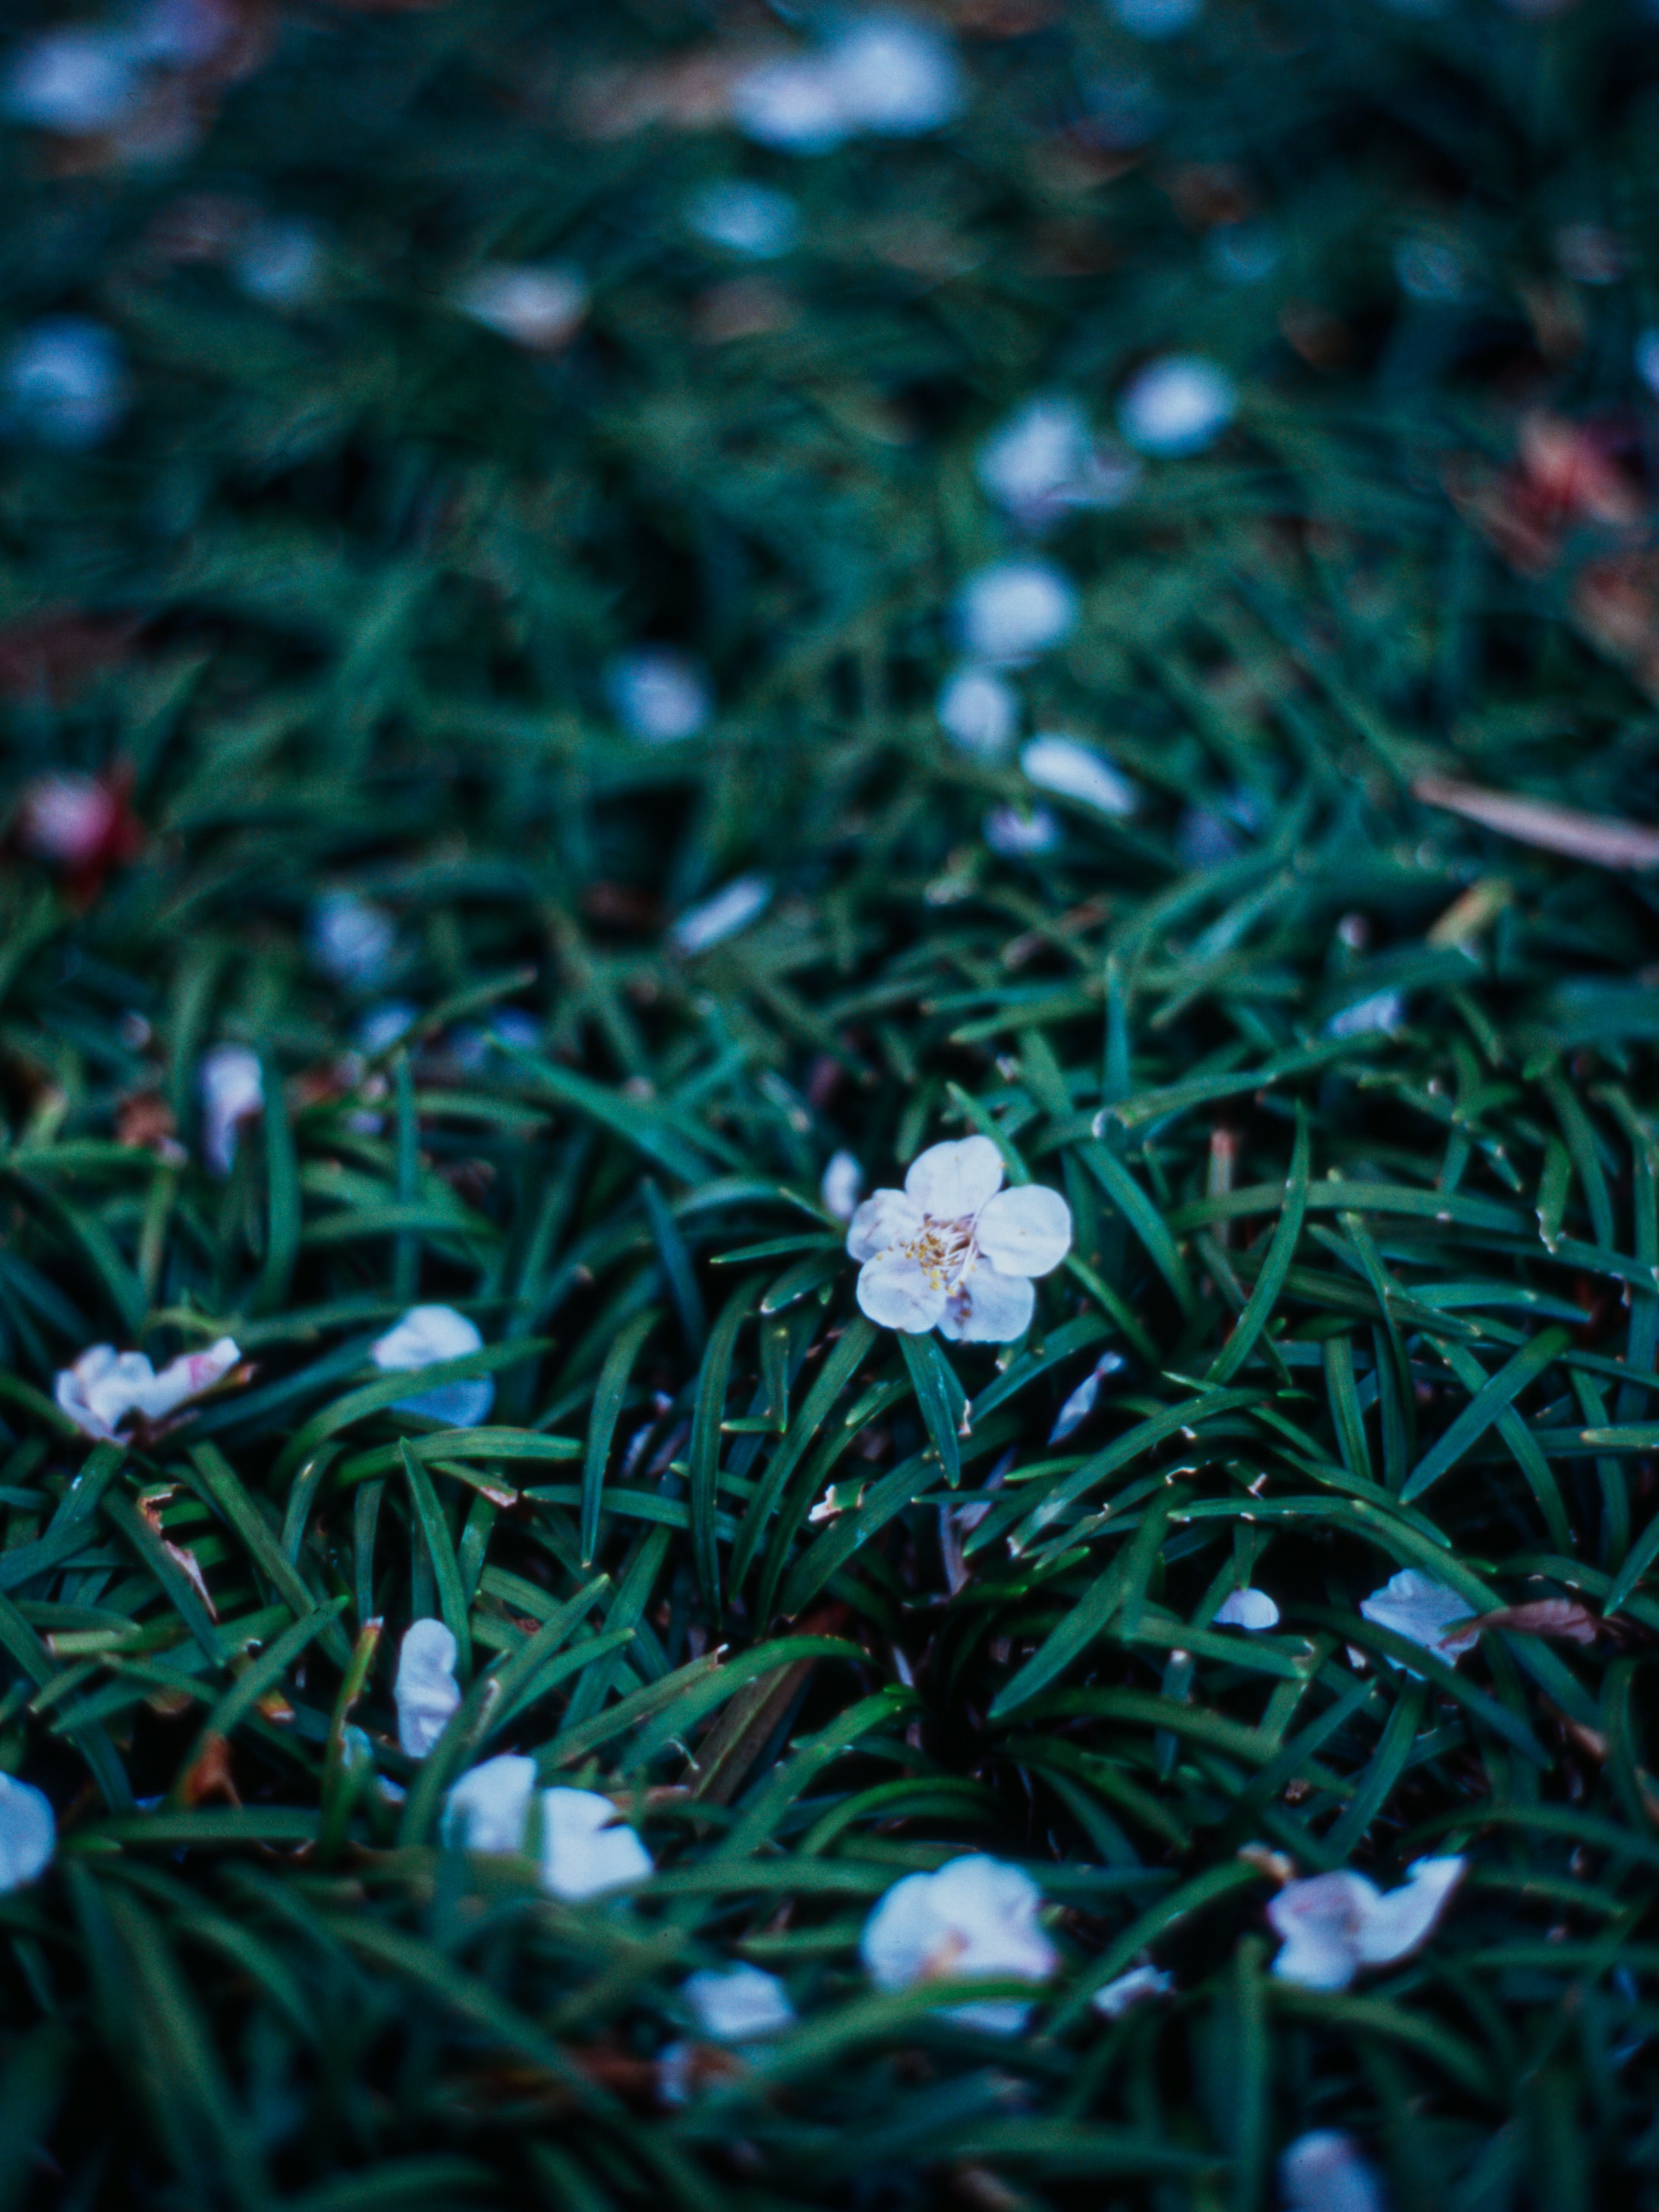 105577 download wallpaper Flowers, Plant, Grass, Dusk, Twilight screensavers and pictures for free